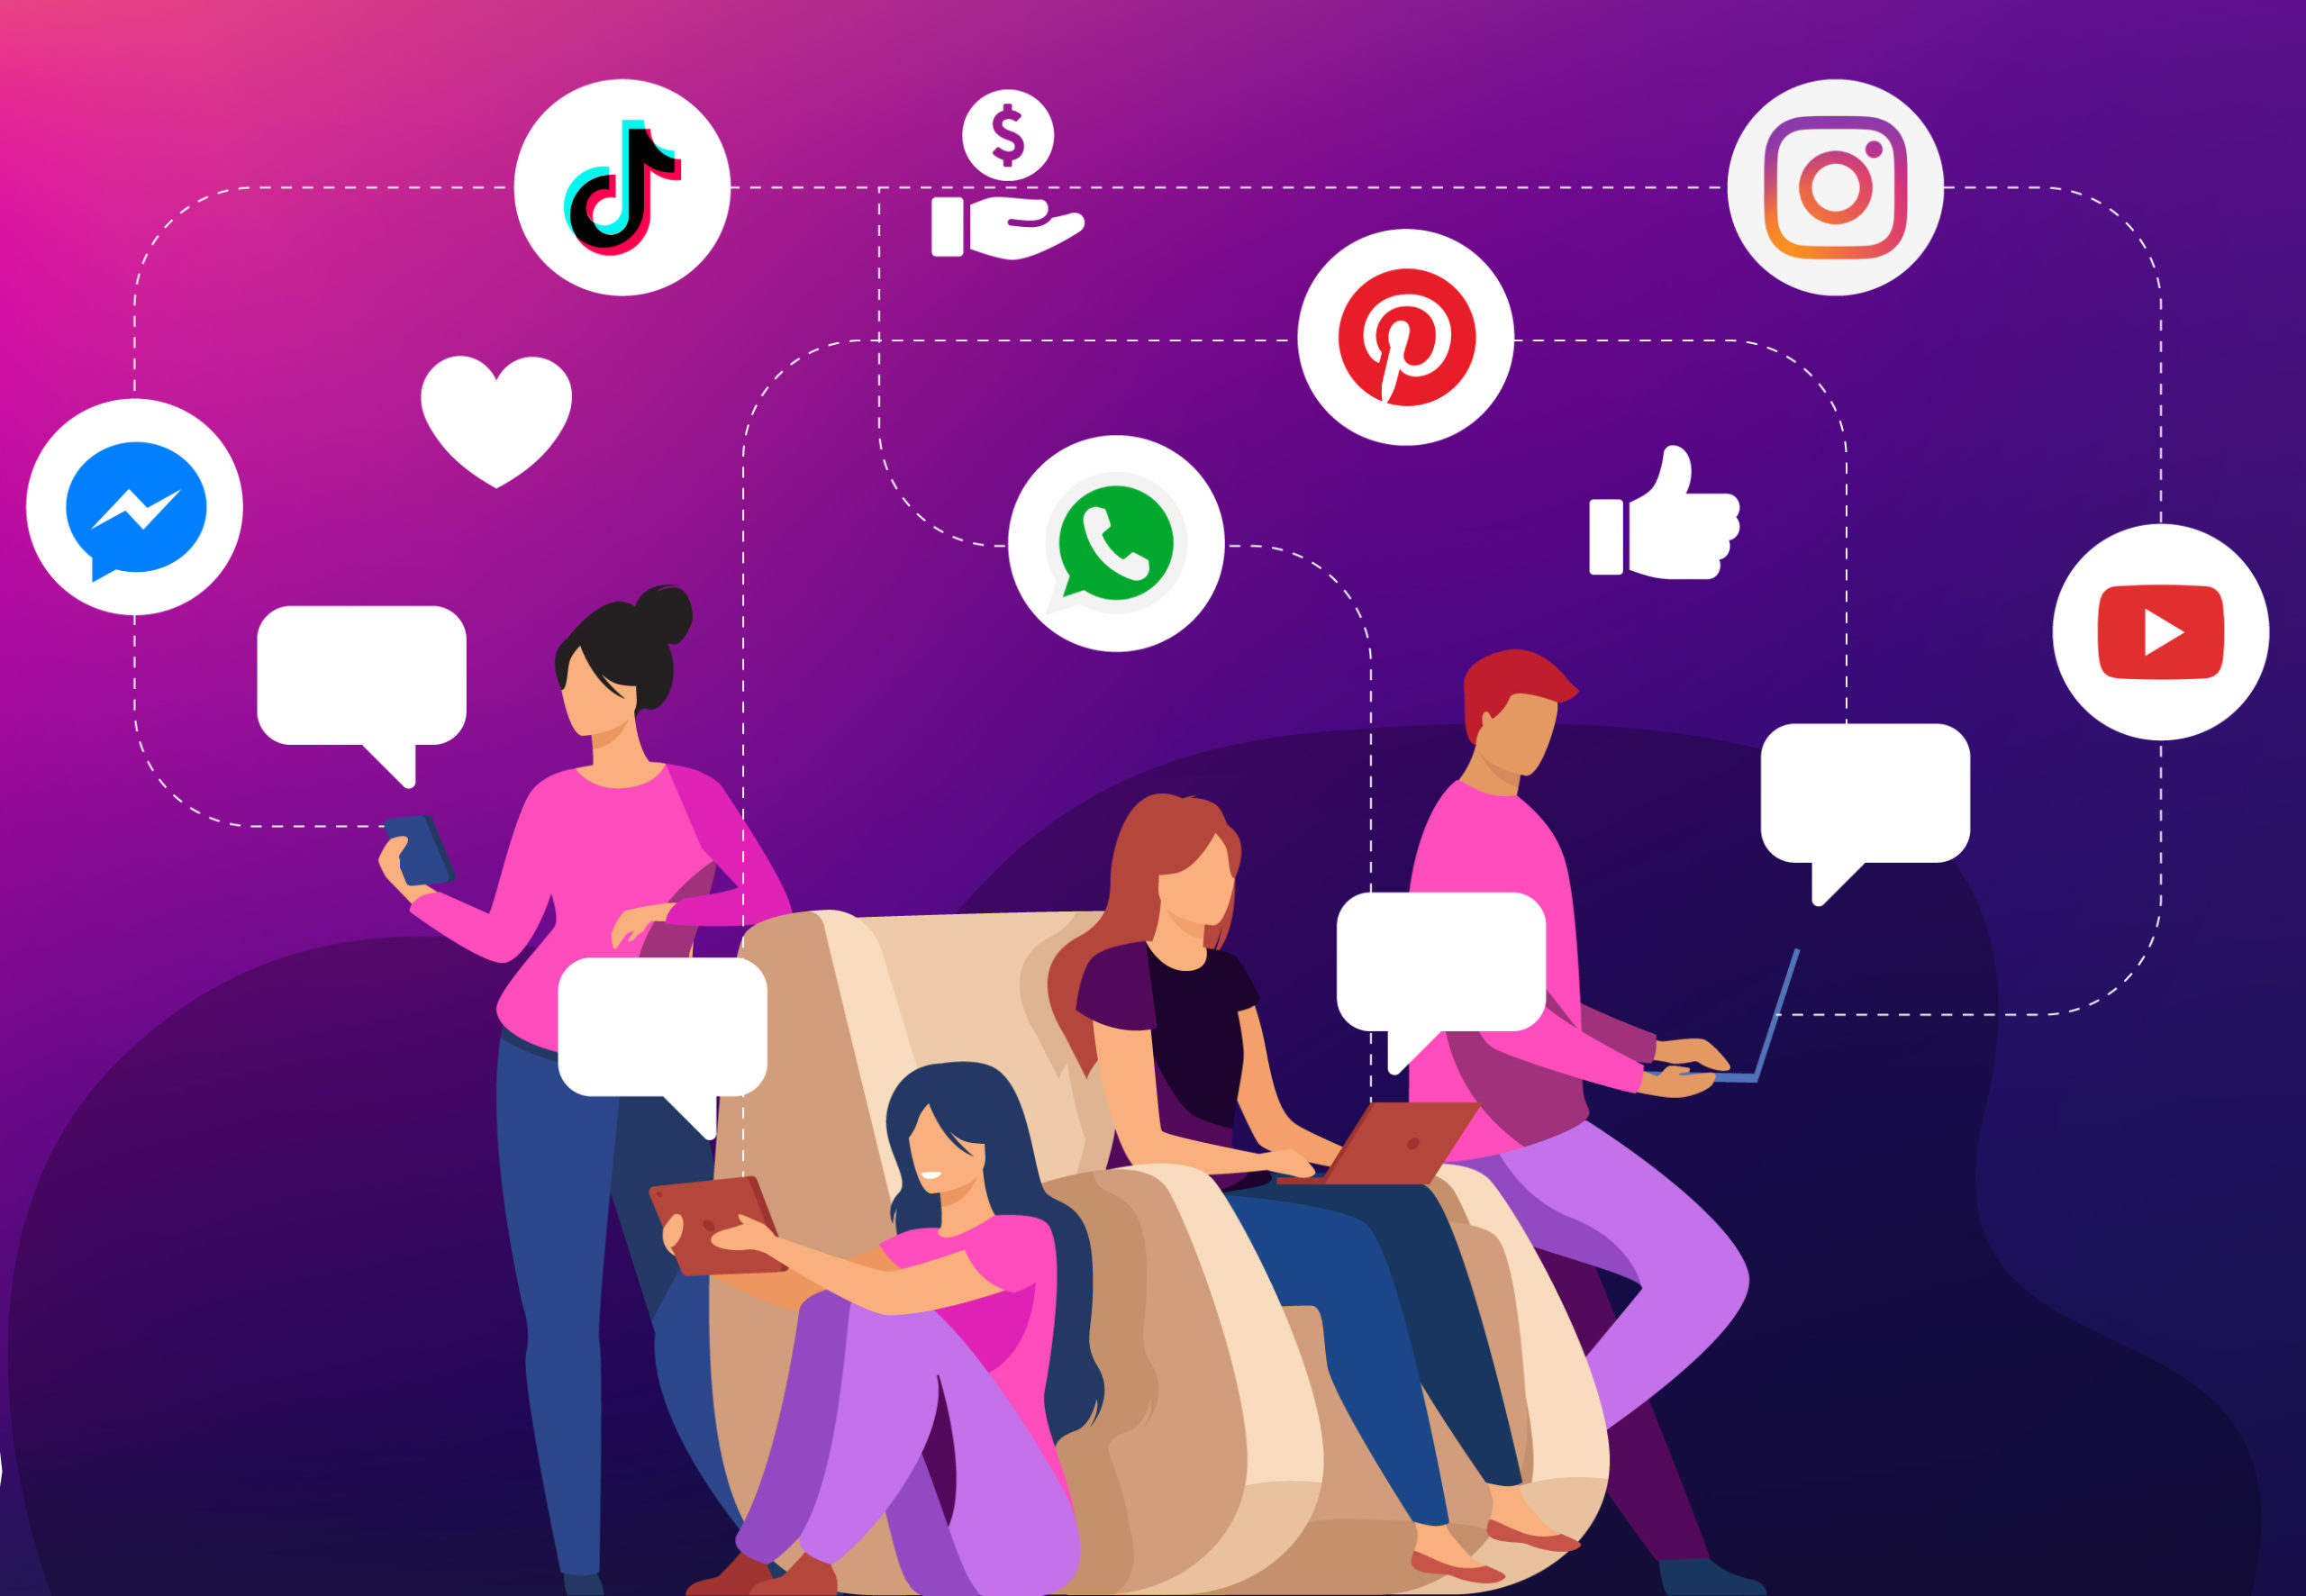 The Latest & Greatest Social Media Features Of Spring 2020